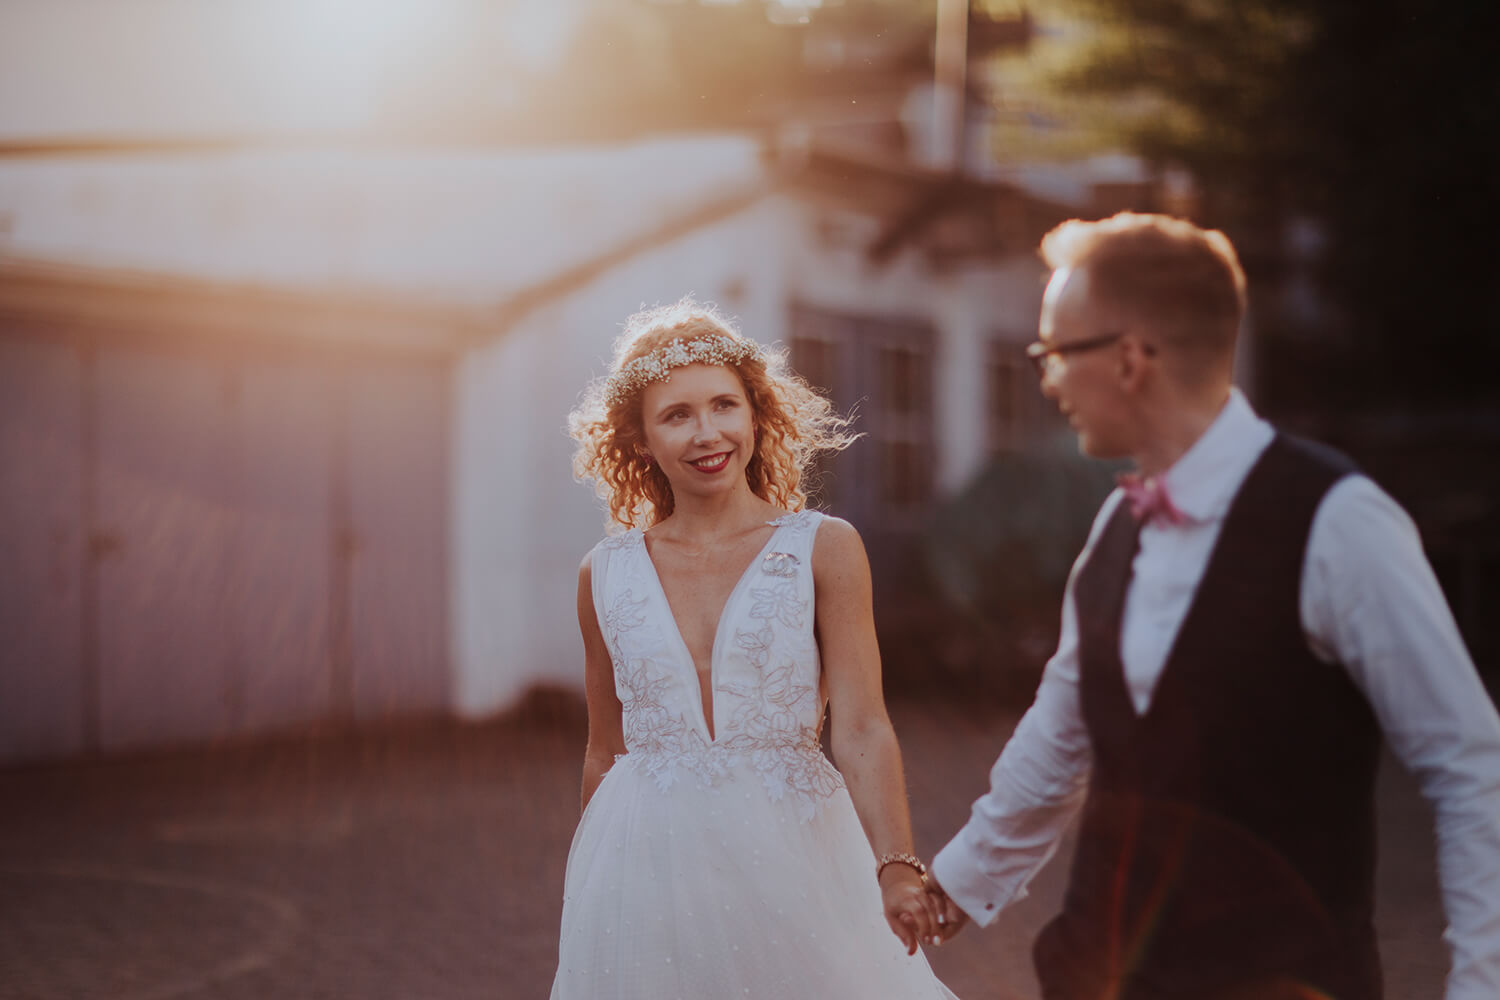 Wedding-Update-Couple-Shooting-during-our-Wedding-Party-Kationette-Lifestyleblogger-NRW-Brautpaarshooting